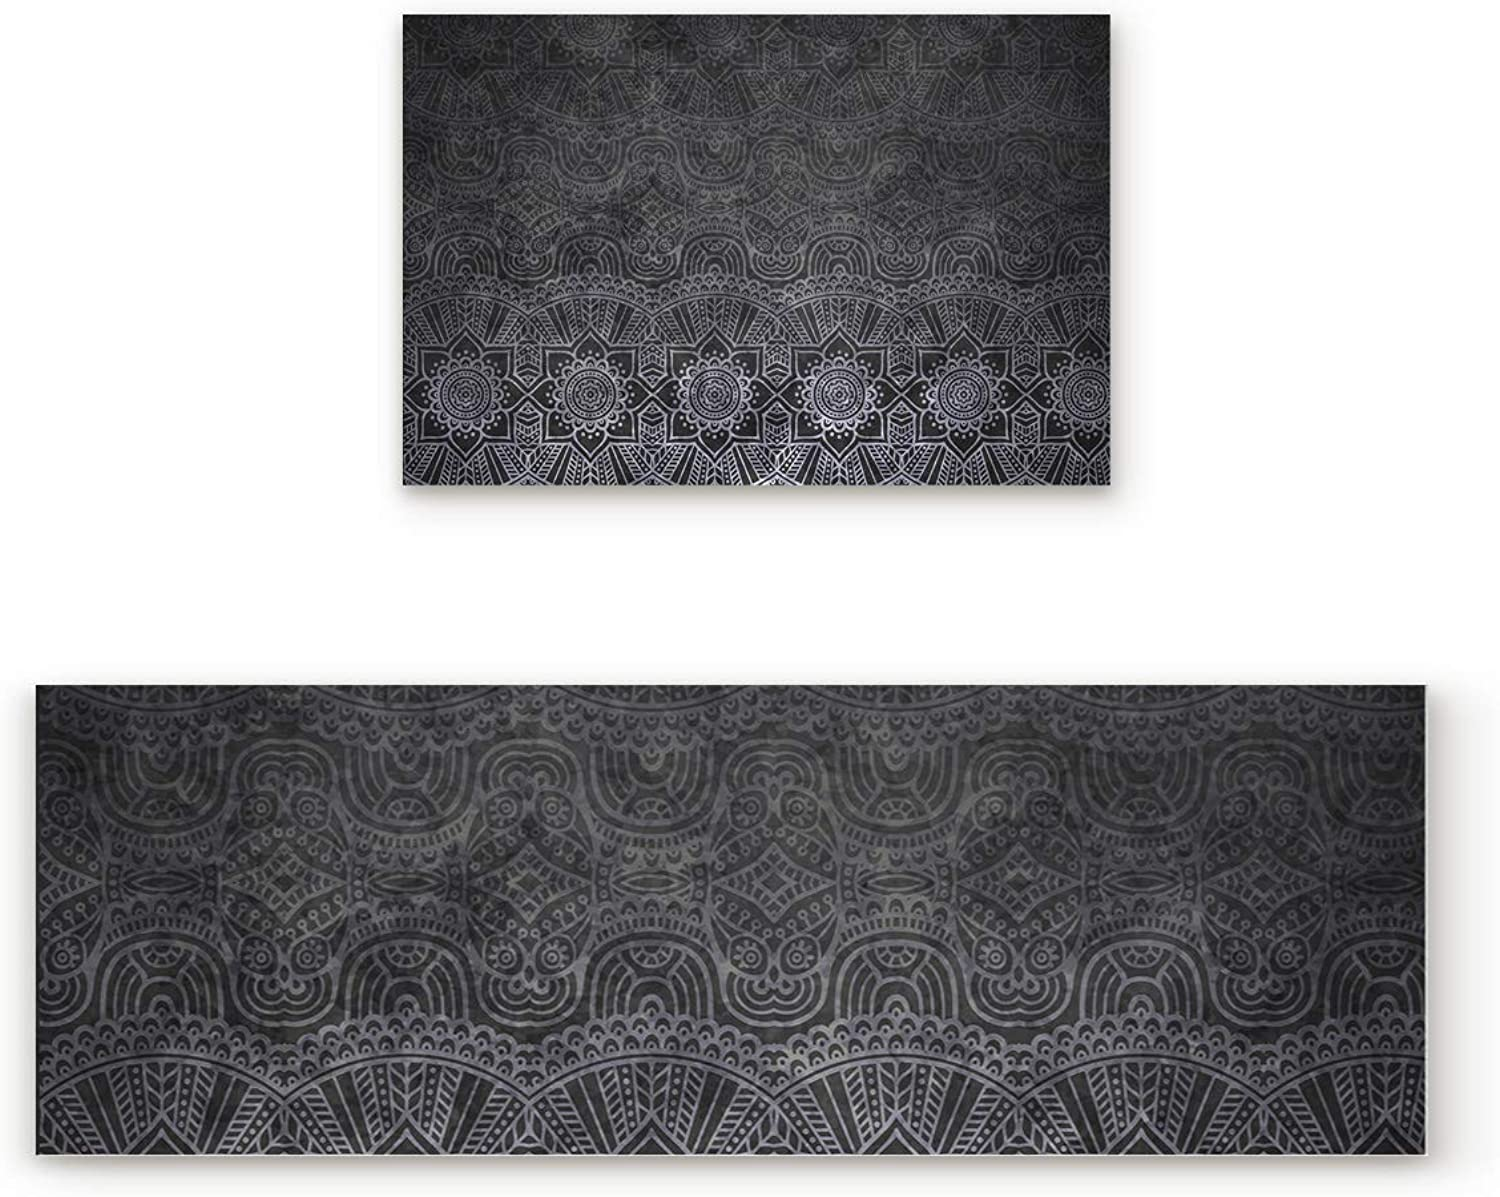 Aomike 2 Piece Non-Slip Kitchen Mat Rubber Backing Doormat Indian Mandala Black Floral Pattern Runner Rug Set, Hallway Living Room Balcony Bathroom Carpet Sets (23.6  x 35.4 +23.6  x 70.9 )